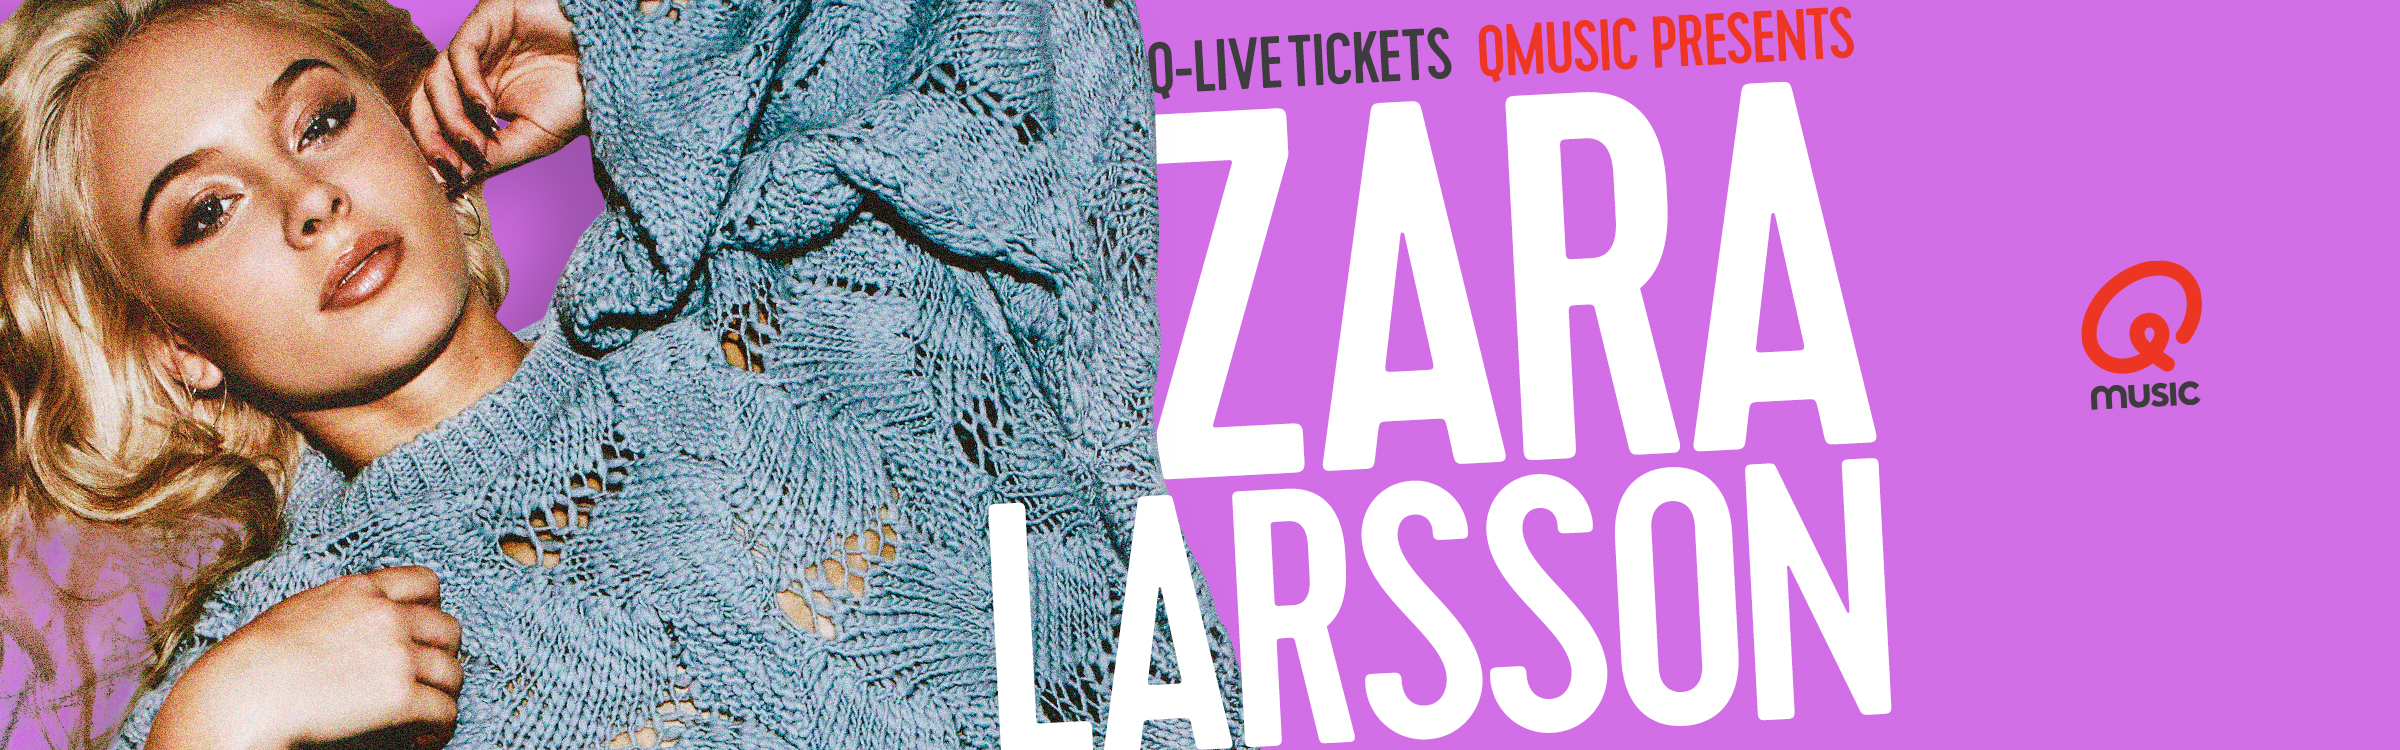 Qmusic actionheader zara